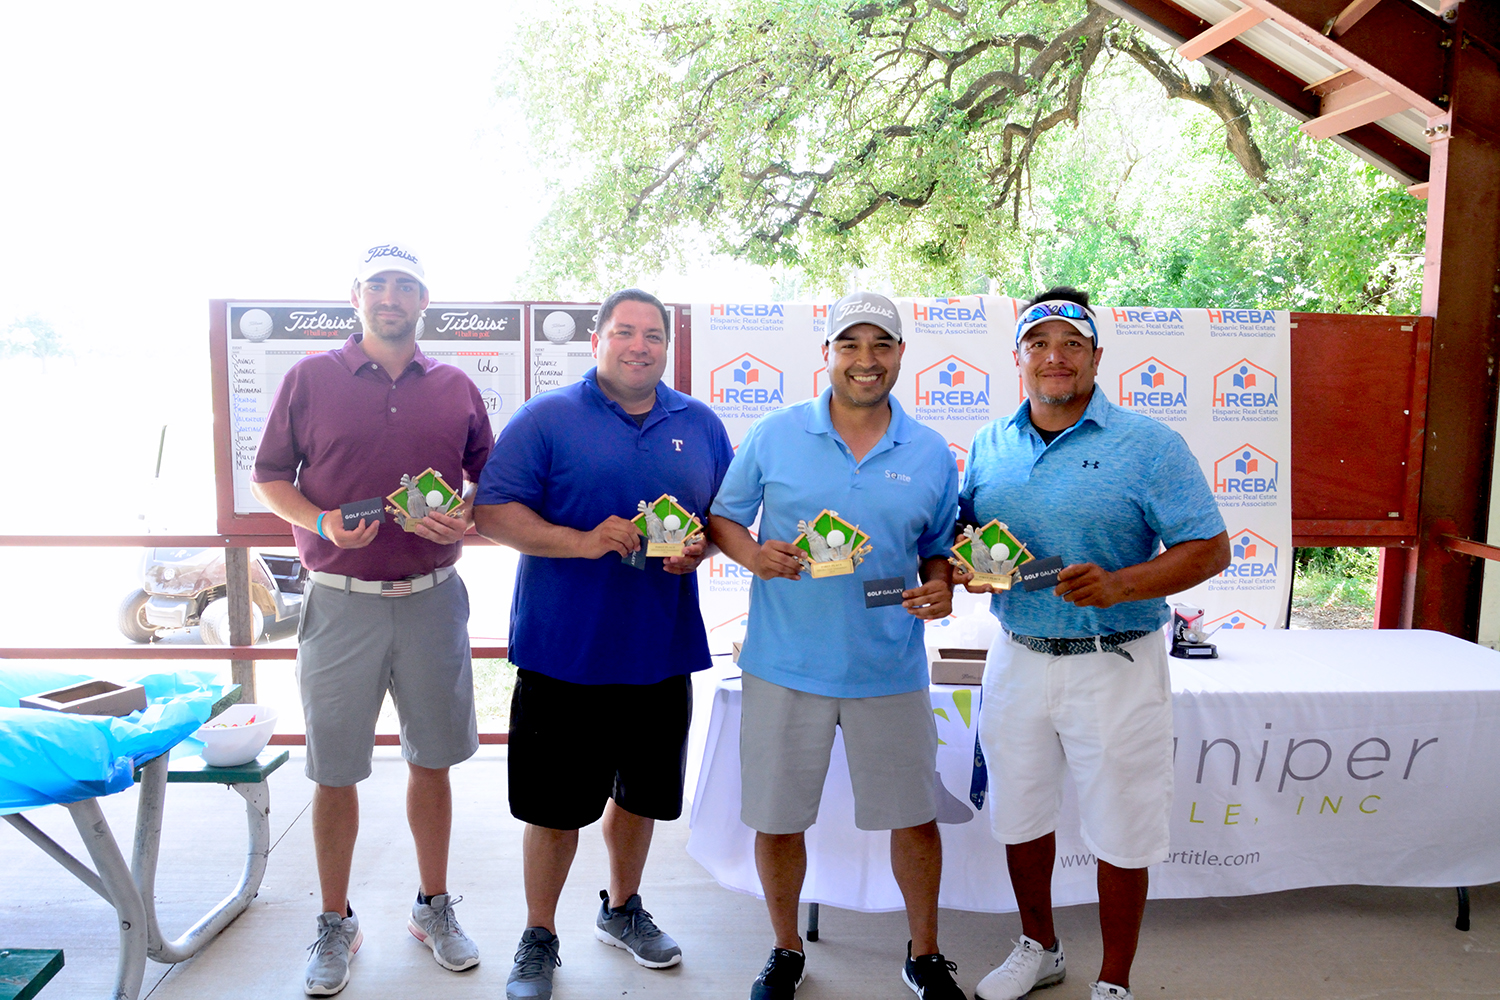 First Place Winners! Fred Salas, Alberto Sanmaniego, Alex Garza & Clay Thompson